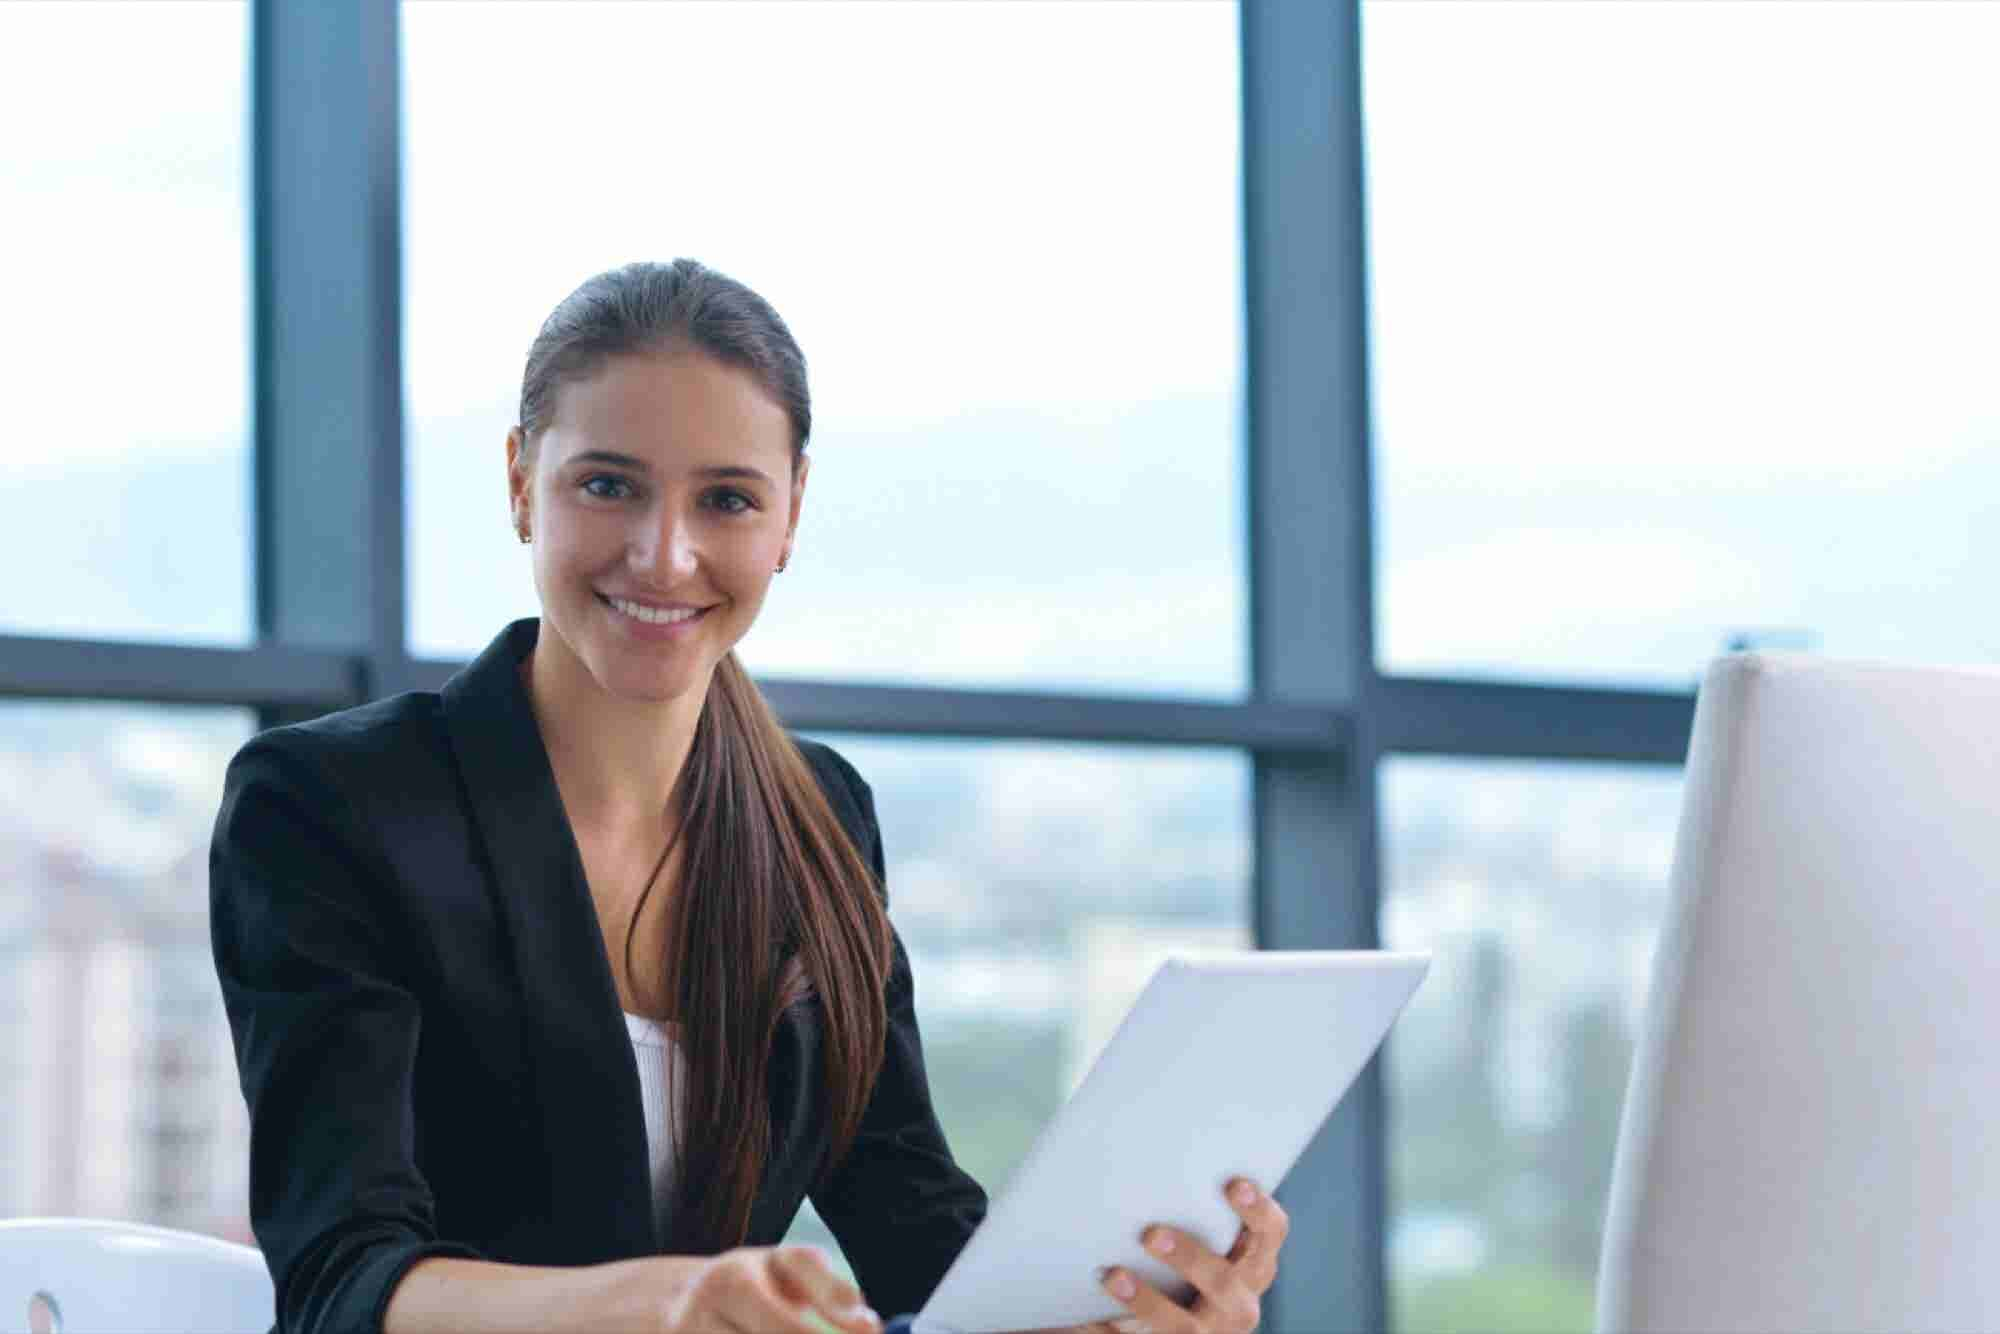 How Can Indian Corporates Build a Gender Inclusive Workplace